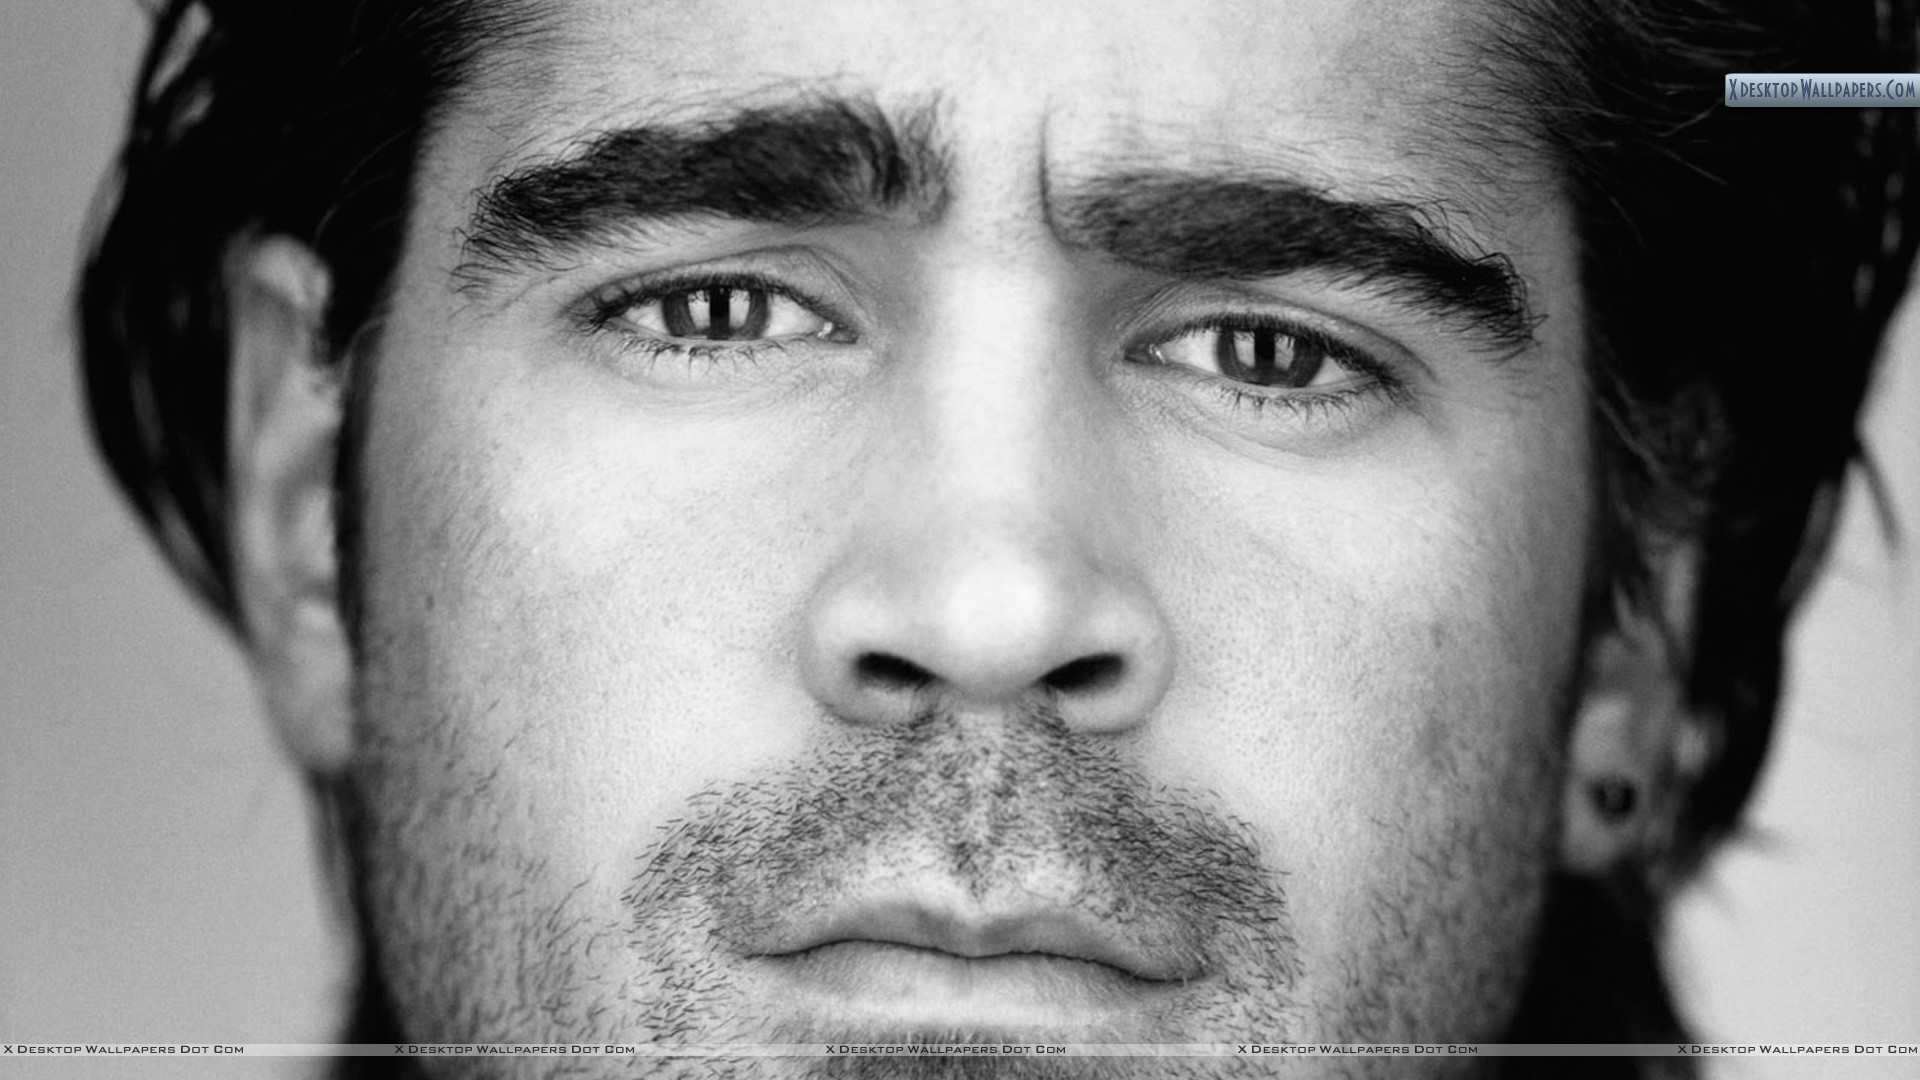 You are viewing wallpaper titled colin farrell black white face